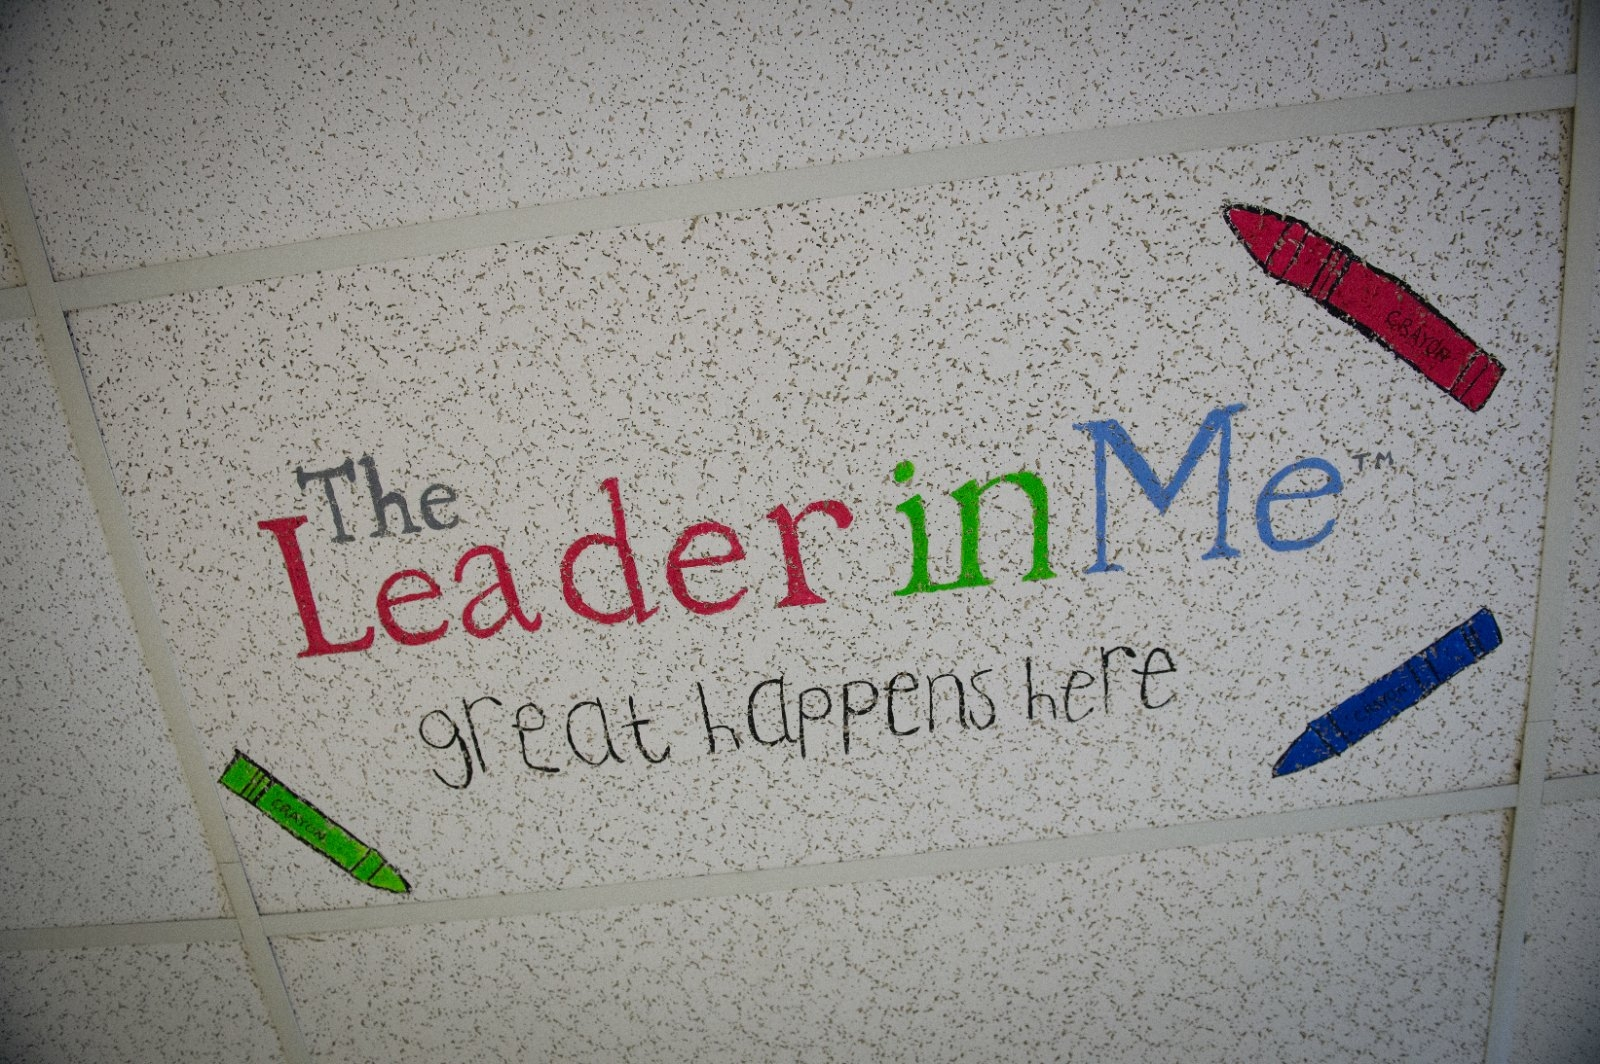 A ceiling tile promoting a leadership campaign in a school.